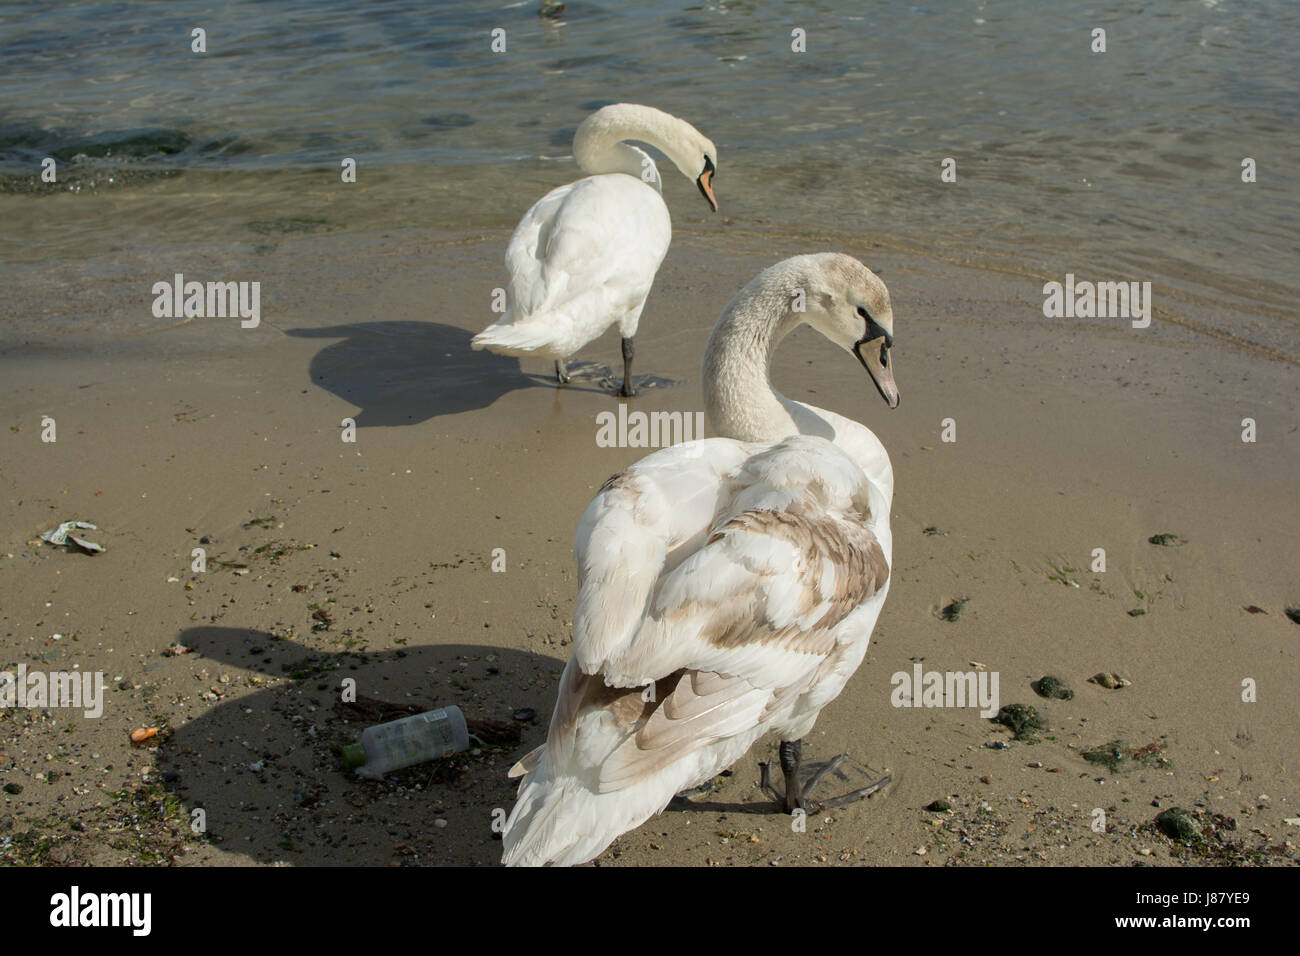 Birds swans white on dirty shore of the Black Sea in Bulgaria. - Stock Image